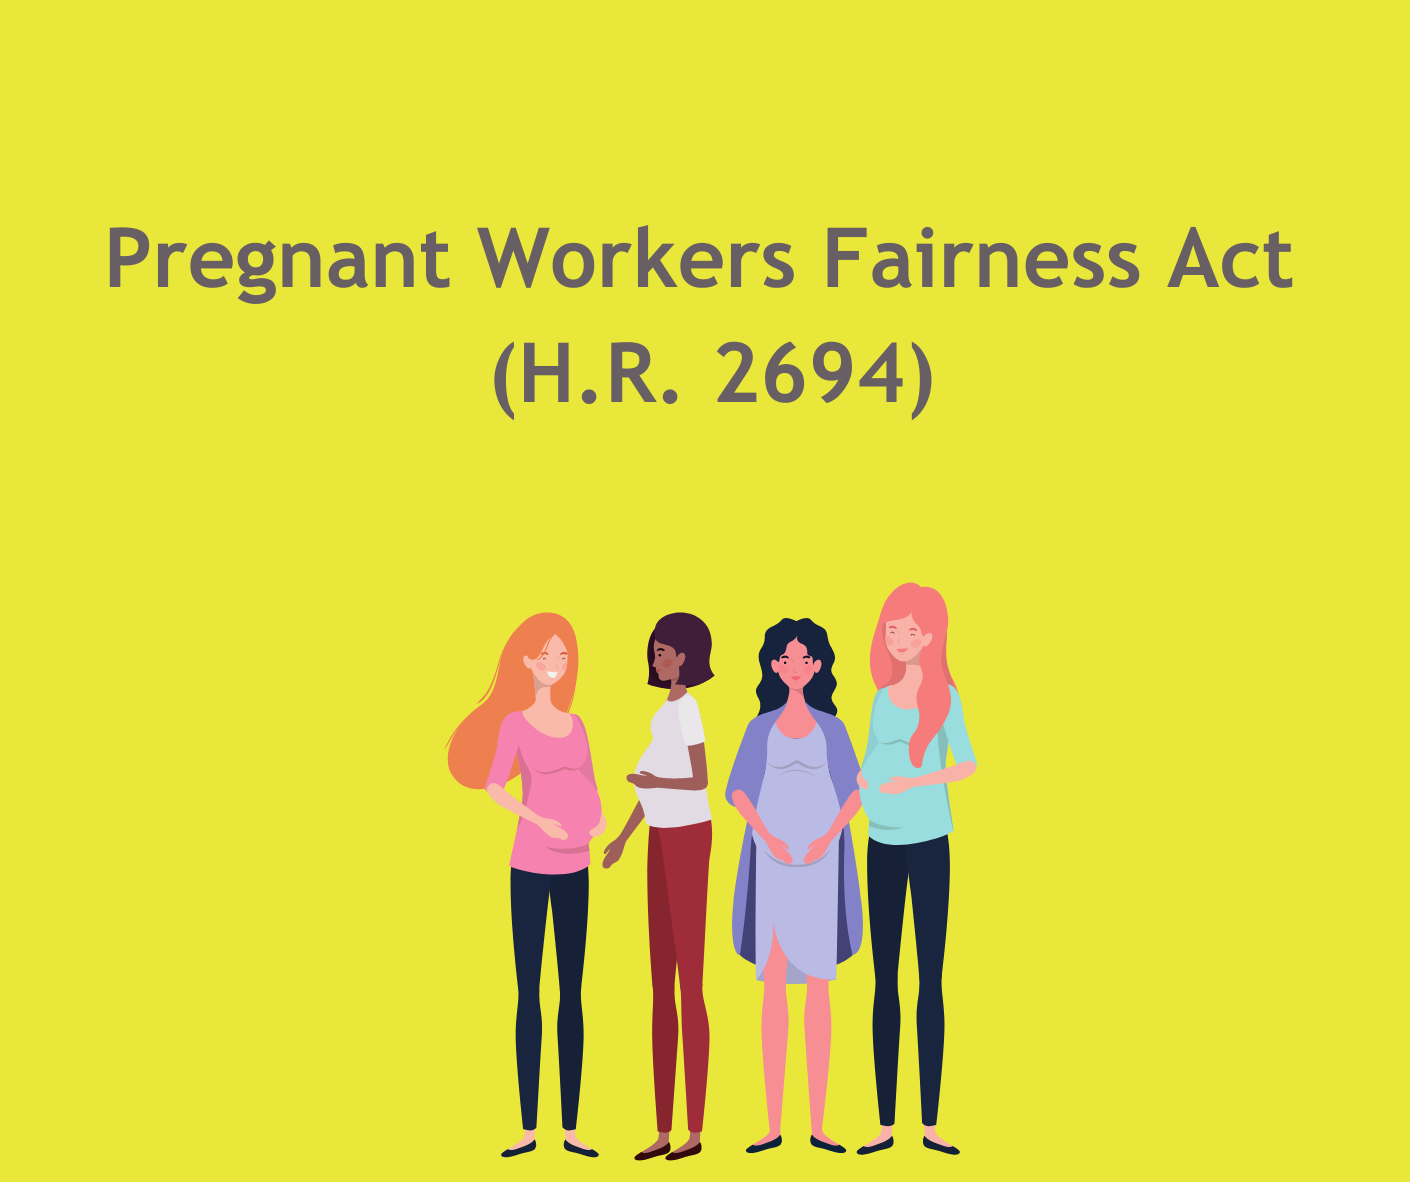 ThePregnant Workers Fairness Act